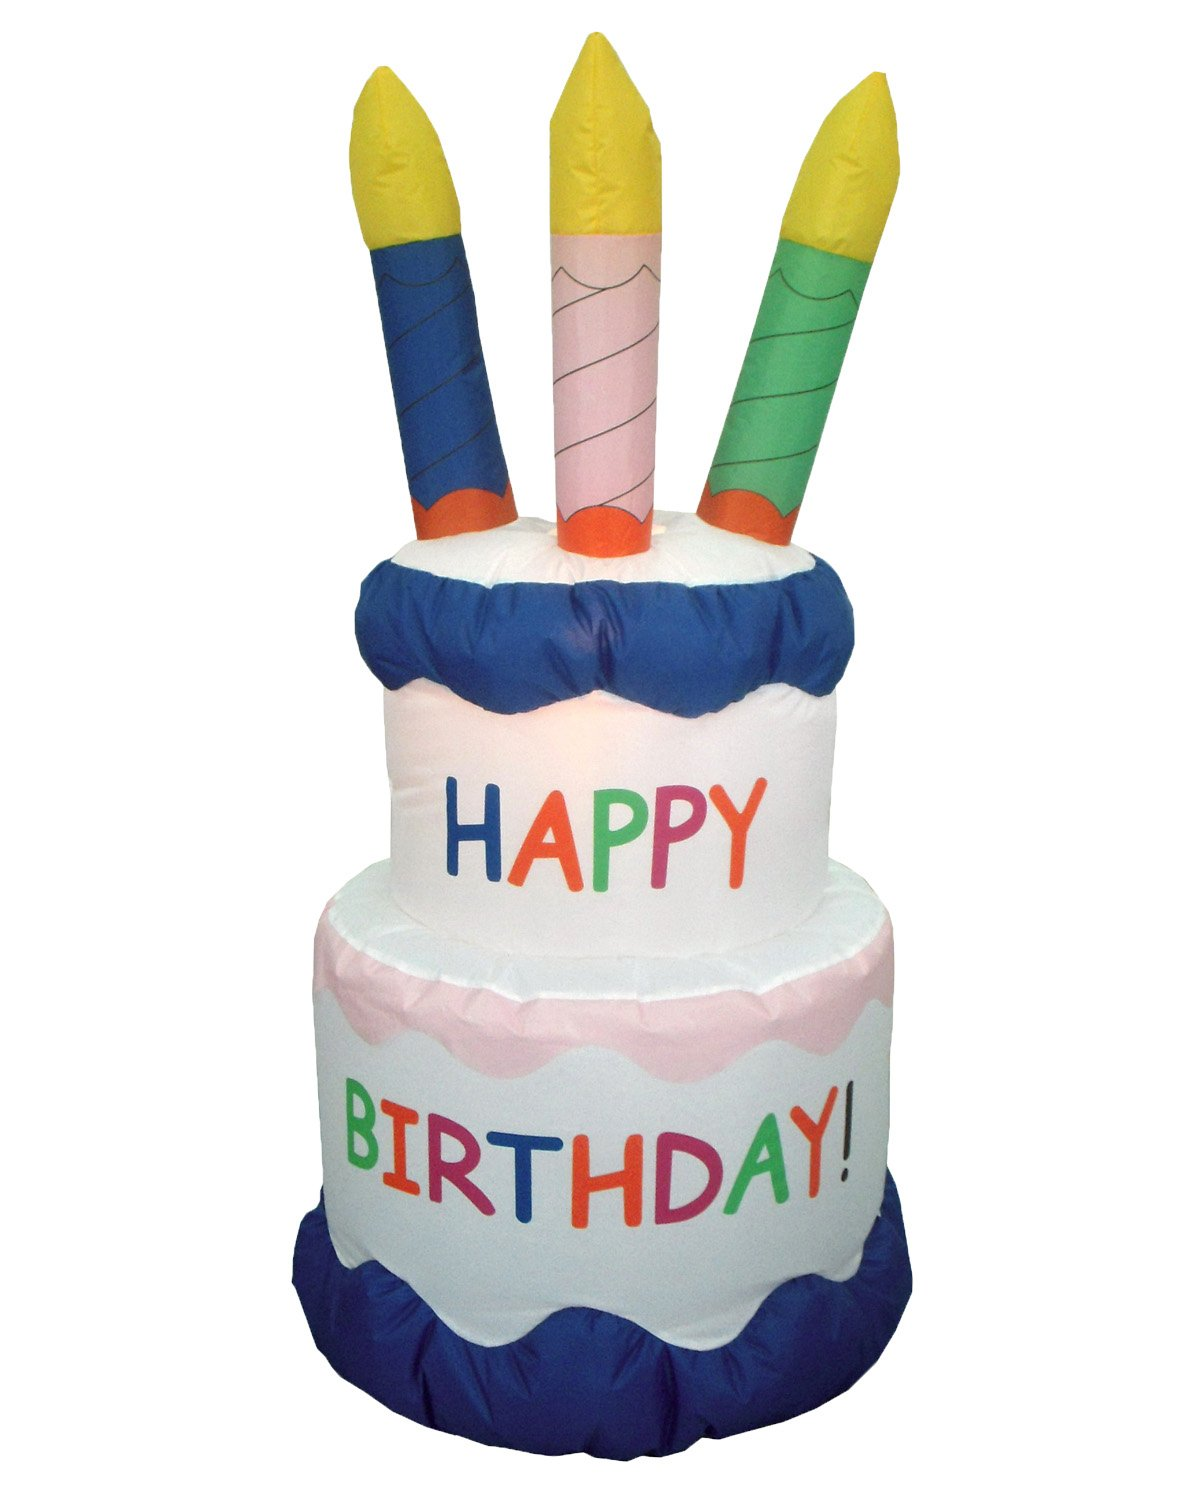 Amazon 6 Foot Inflatable Happy Birthday Cake With Candles Yard